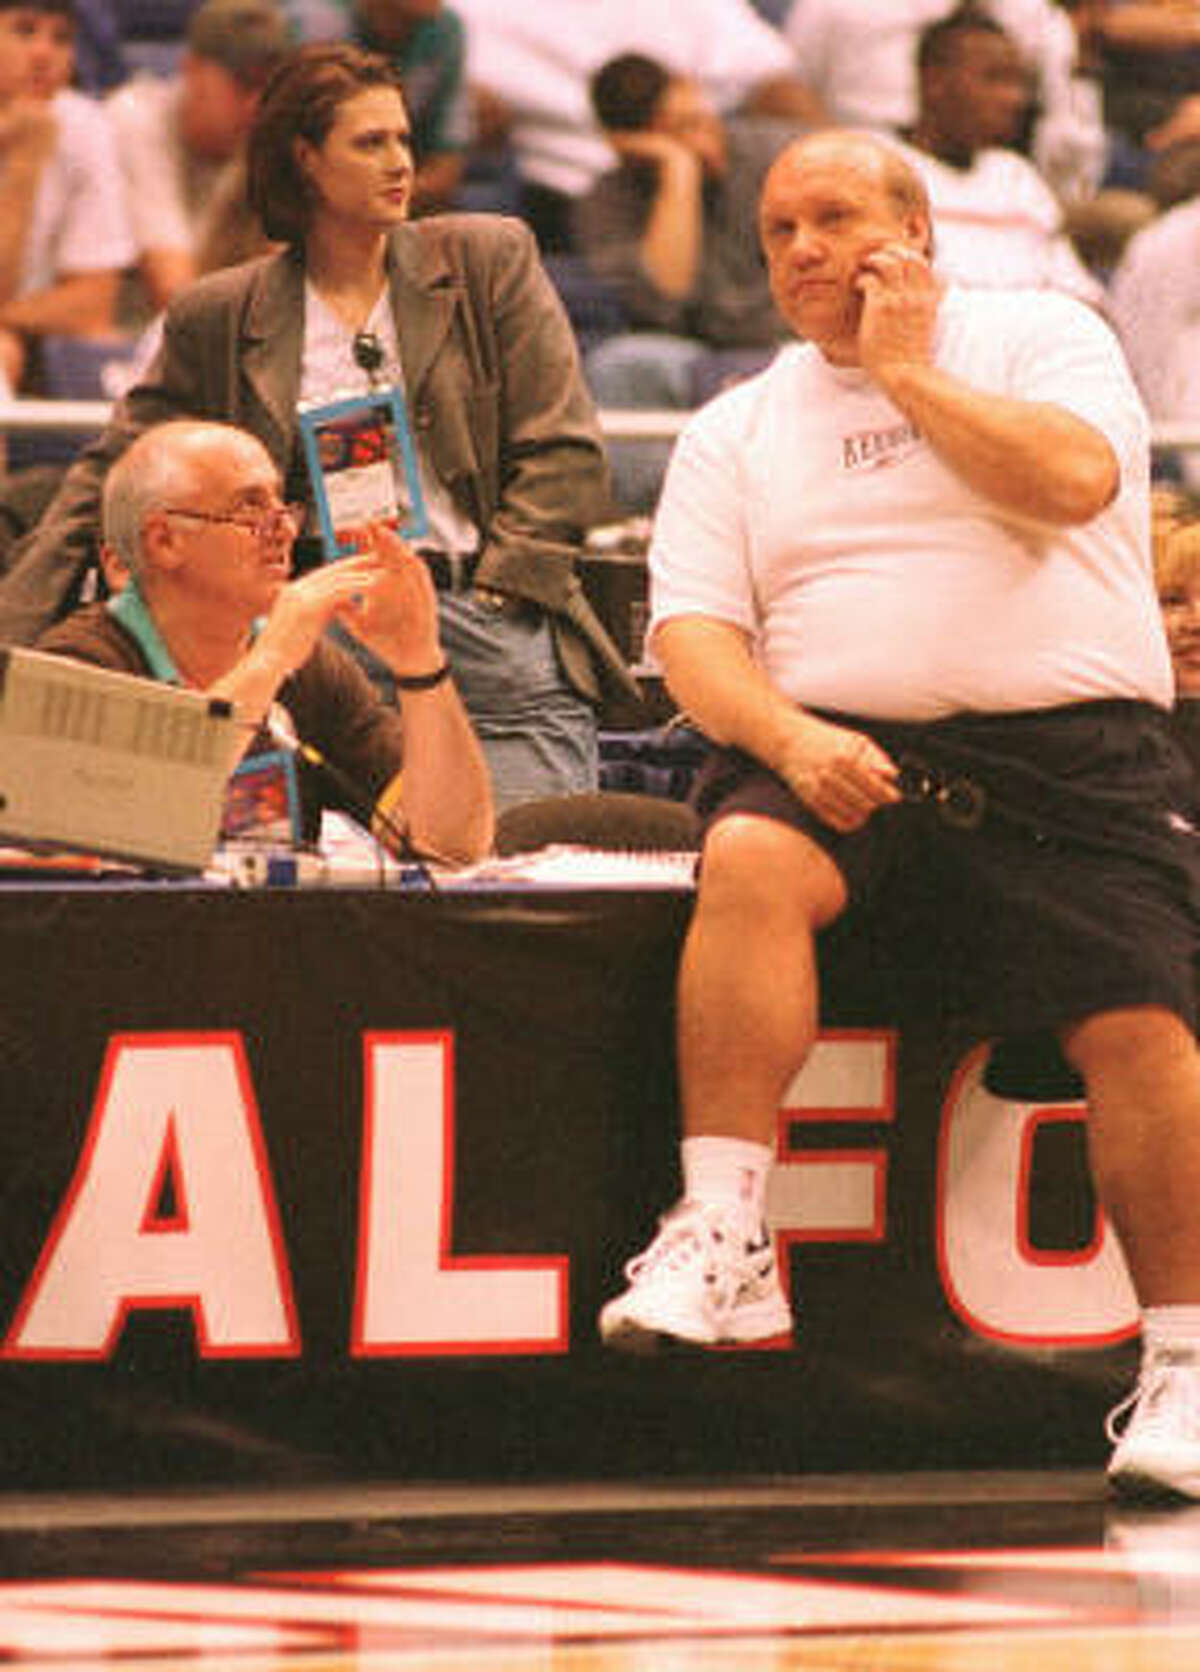 Billy Packer (with Rick Majerus) said he rarely talks about sports at home.